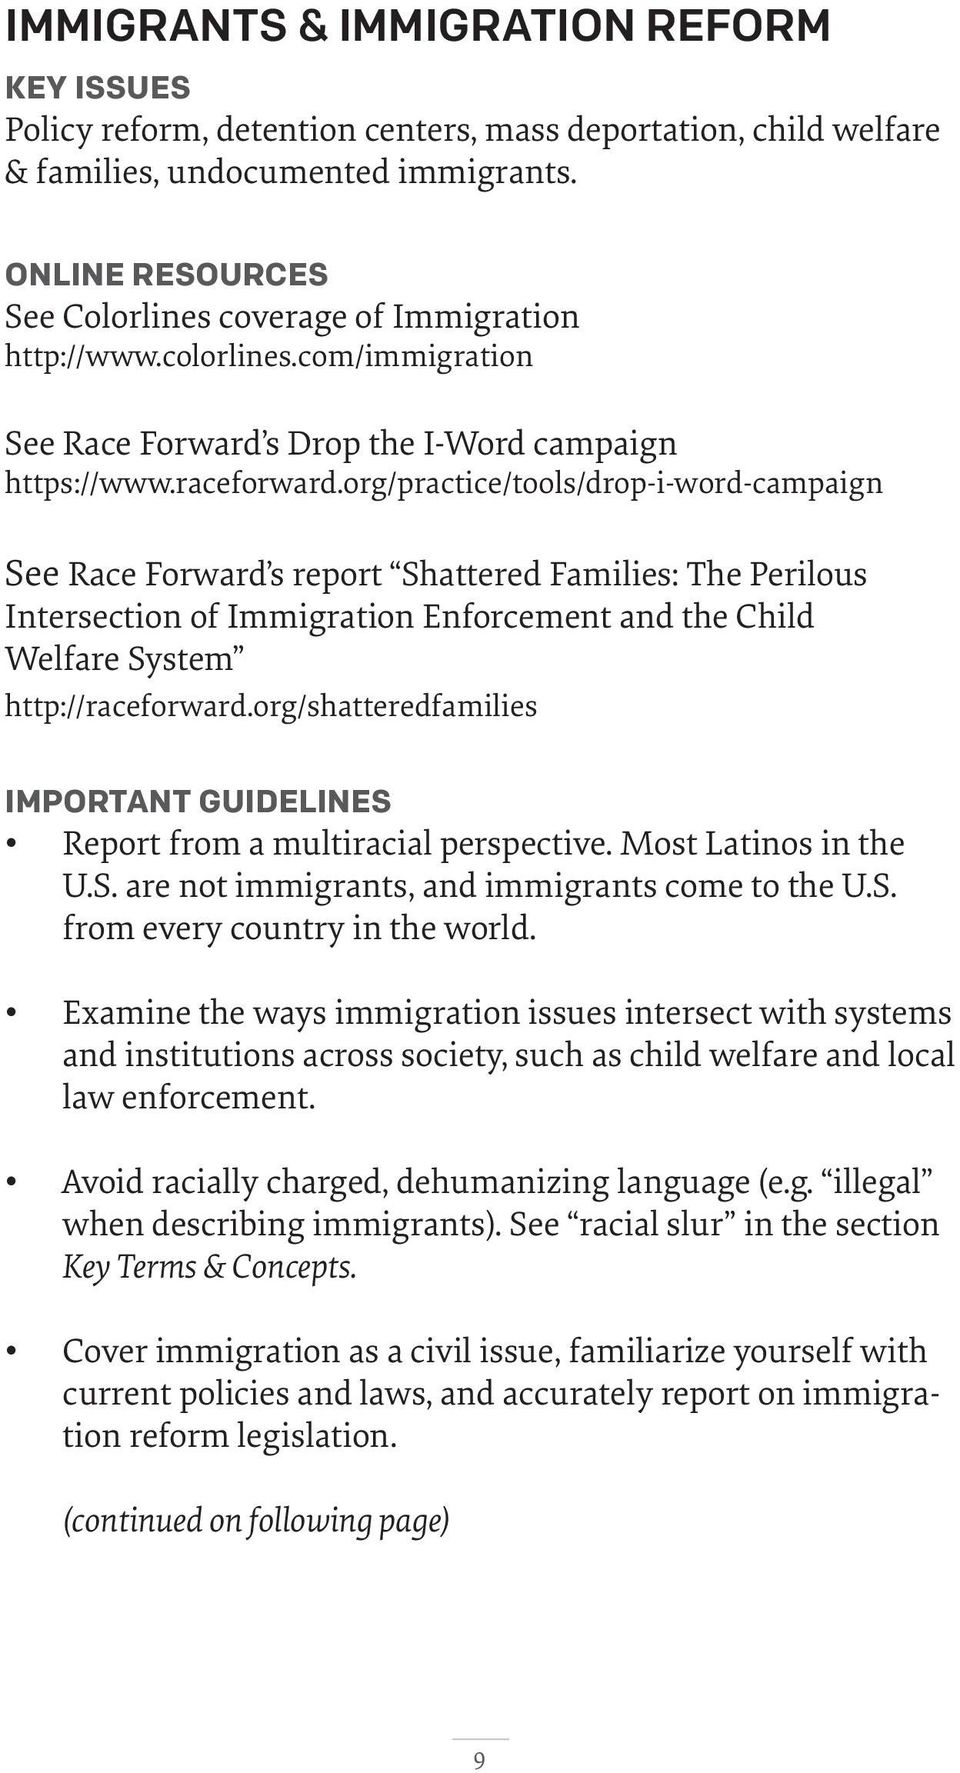 org/practice/tools/drop-i-word-campaign See Race Forward s report Shattered Families: The Perilous Intersection of Immigration Enforcement and the Child Welfare System http://raceforward.